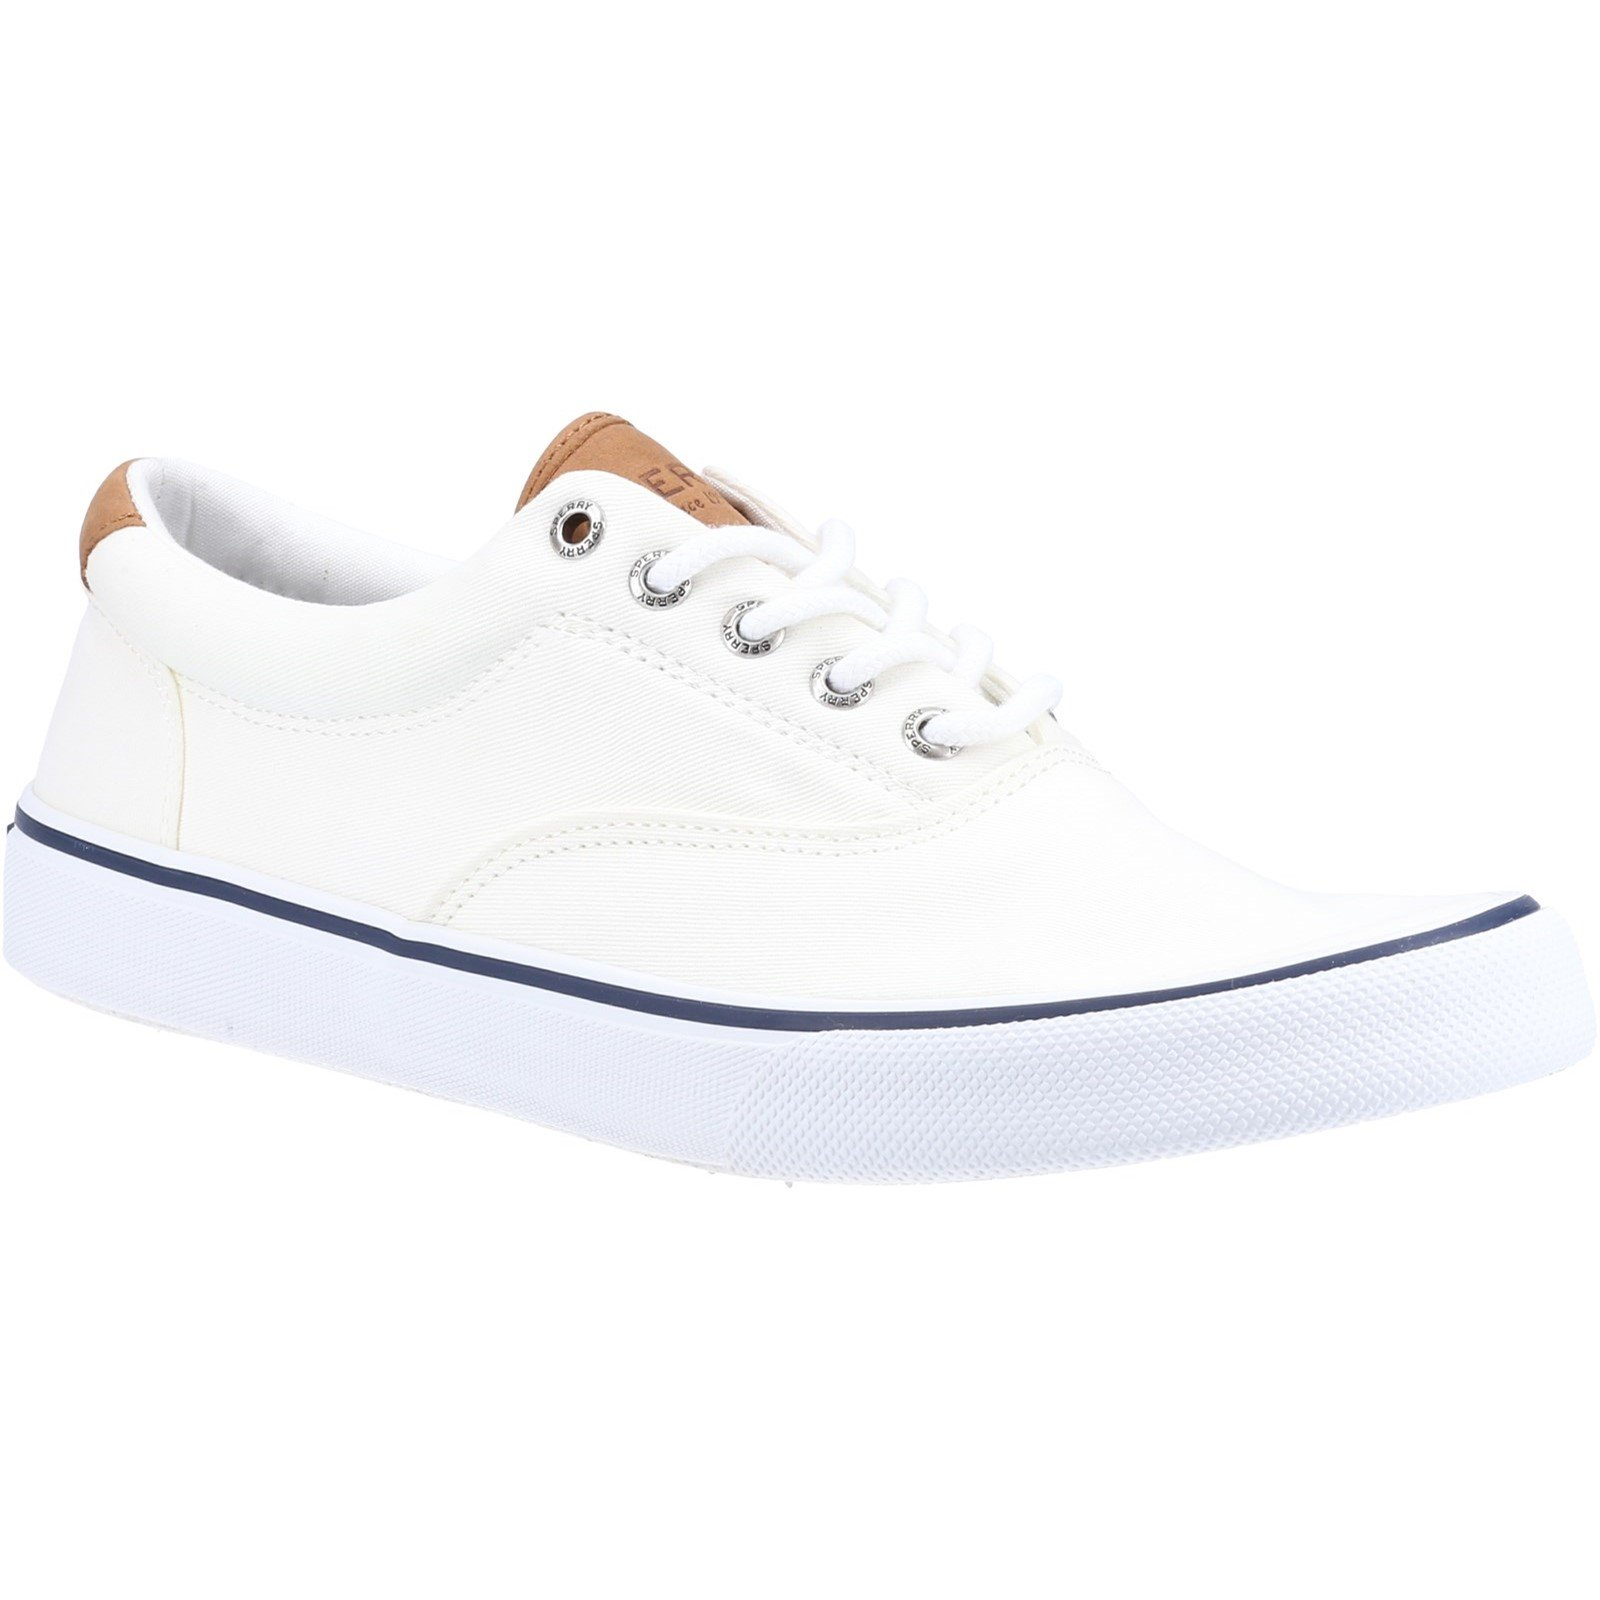 Sperry Men's Striper II CVO Canvas Trainers Various Colours 32397 - Salt Washed White 7